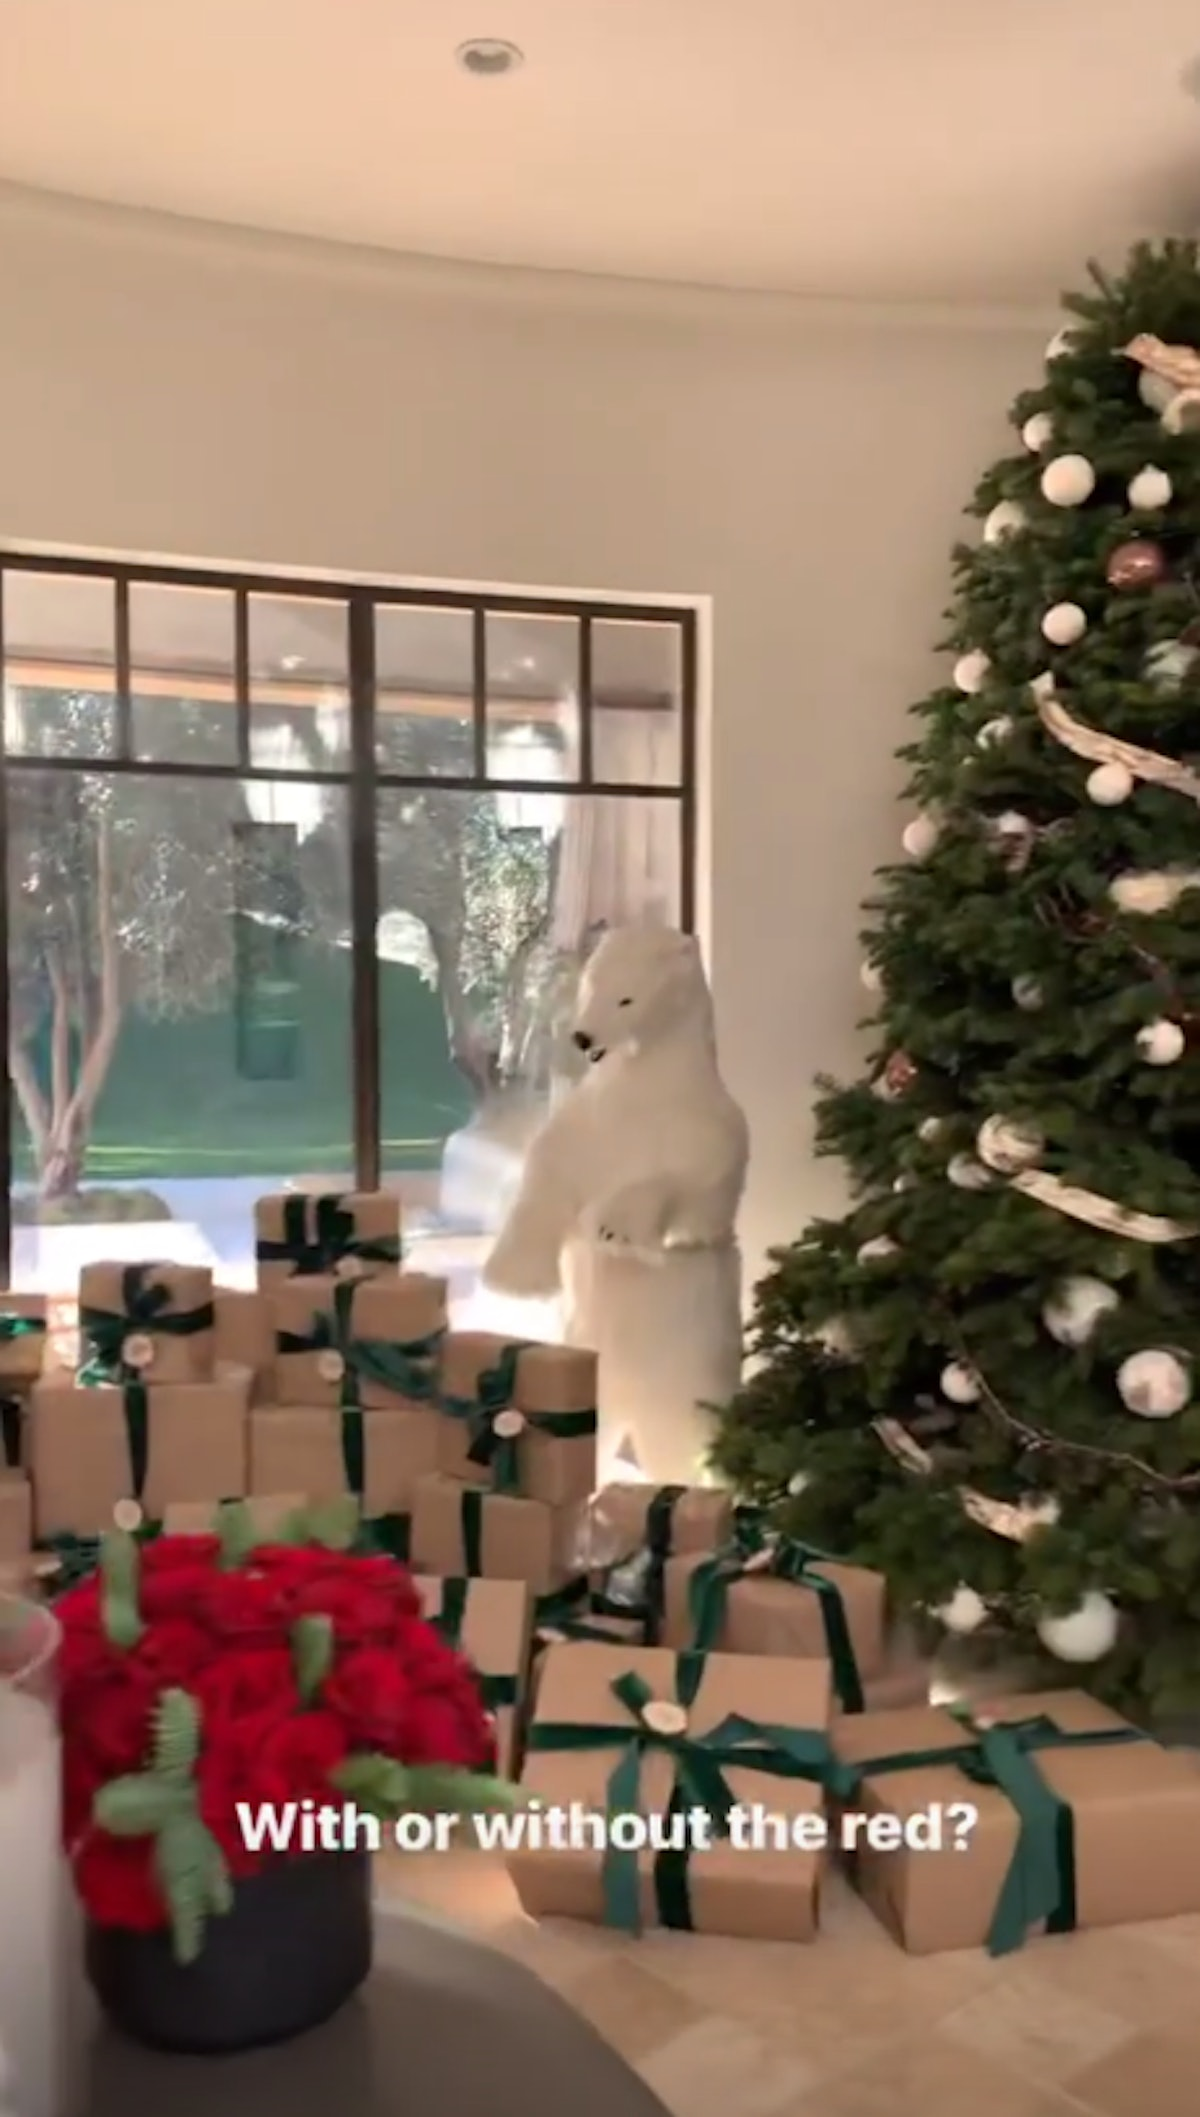 Photos of Kardashian Christmas Decorations To Inspire Your Holiday Party